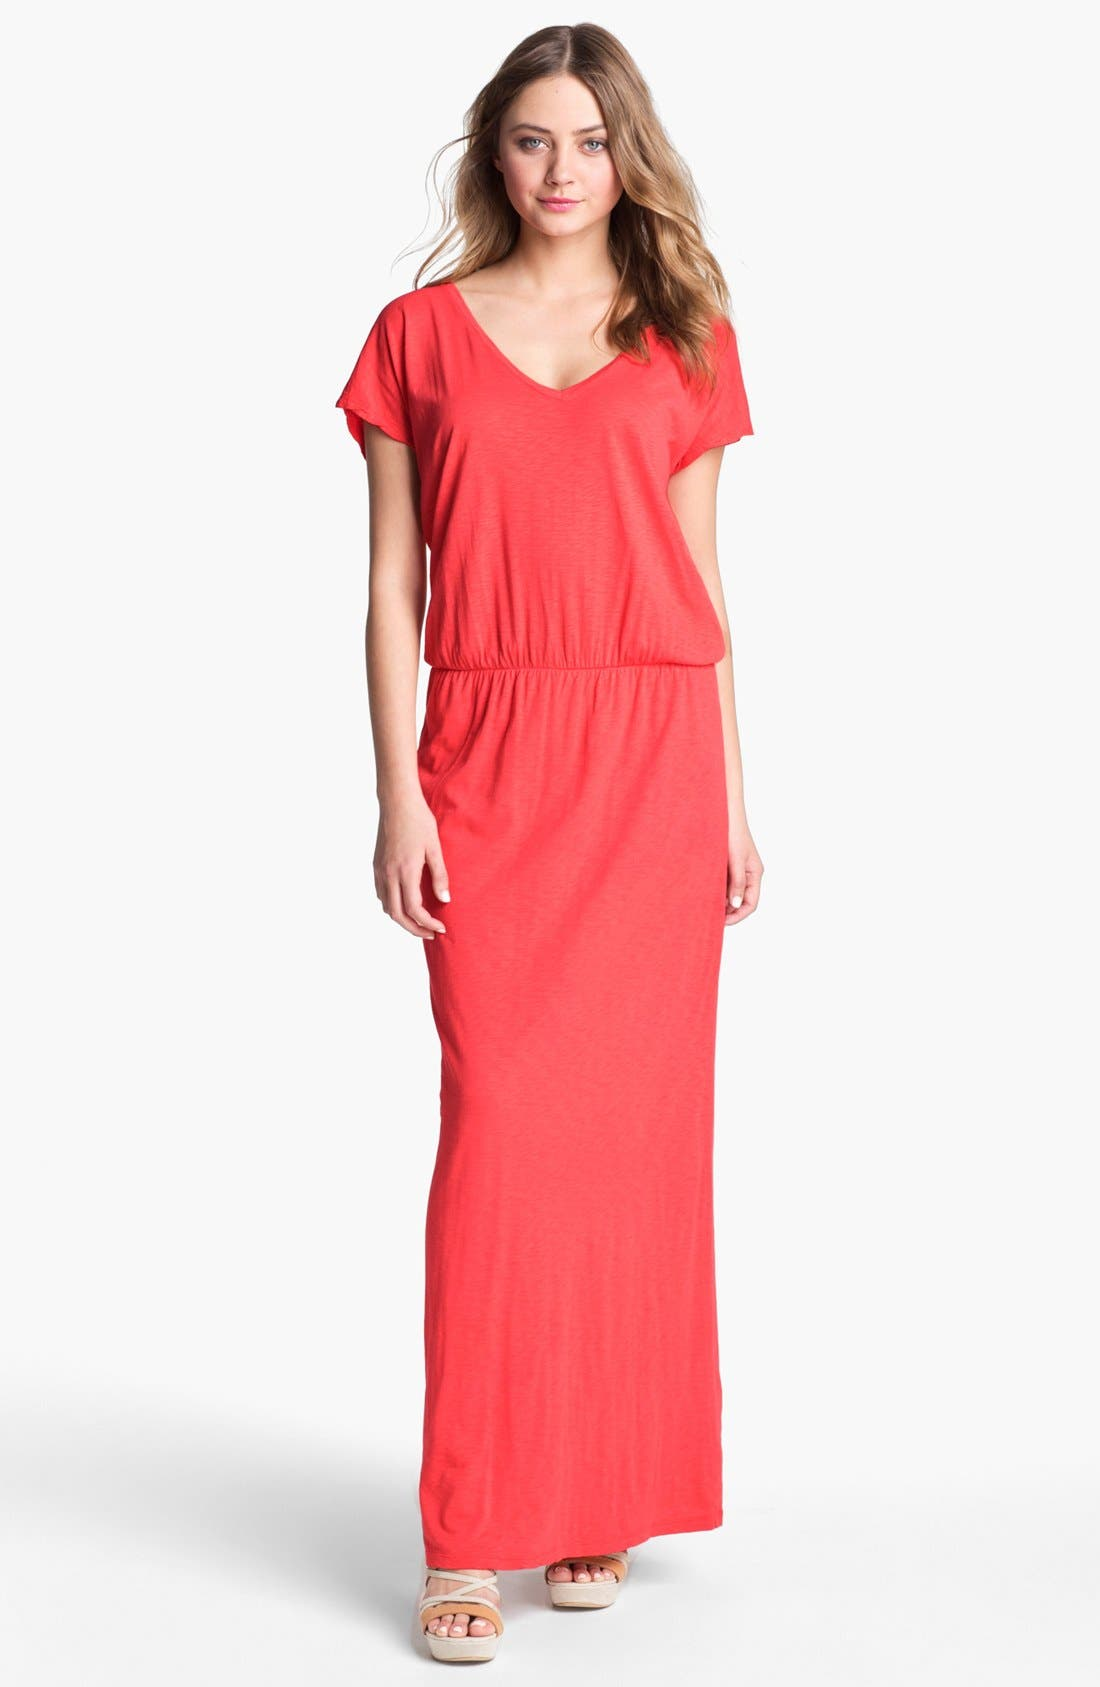 Main Image - Velvet by Graham & Spencer Blouson Maxi Dress